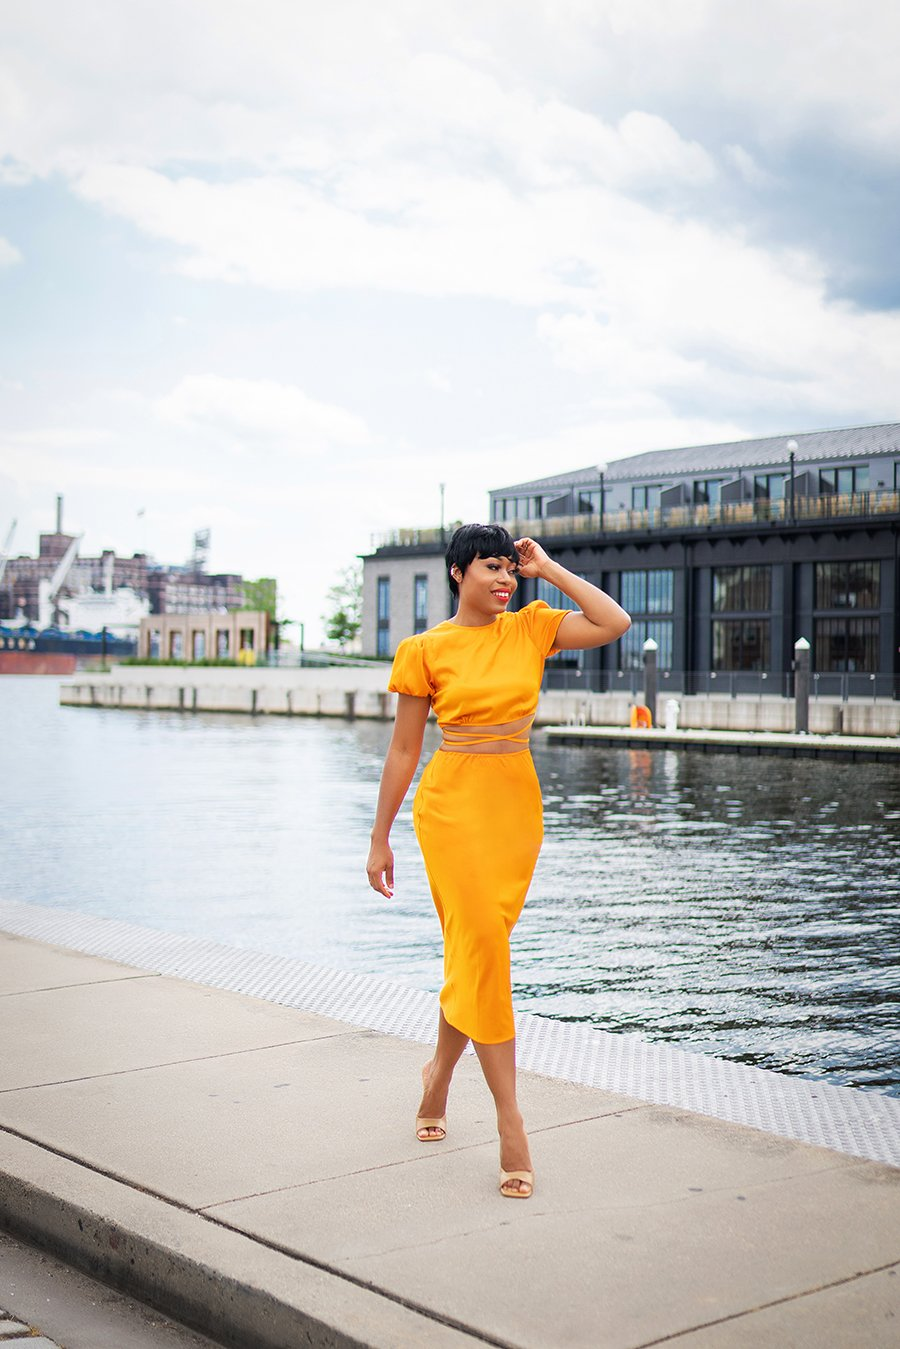 stella-adewunmi-of-jadore-fashion-blog-shares-how-to-wear-the-color-orange-in-wayf-crop-top-skirt-baltimore-fells-point